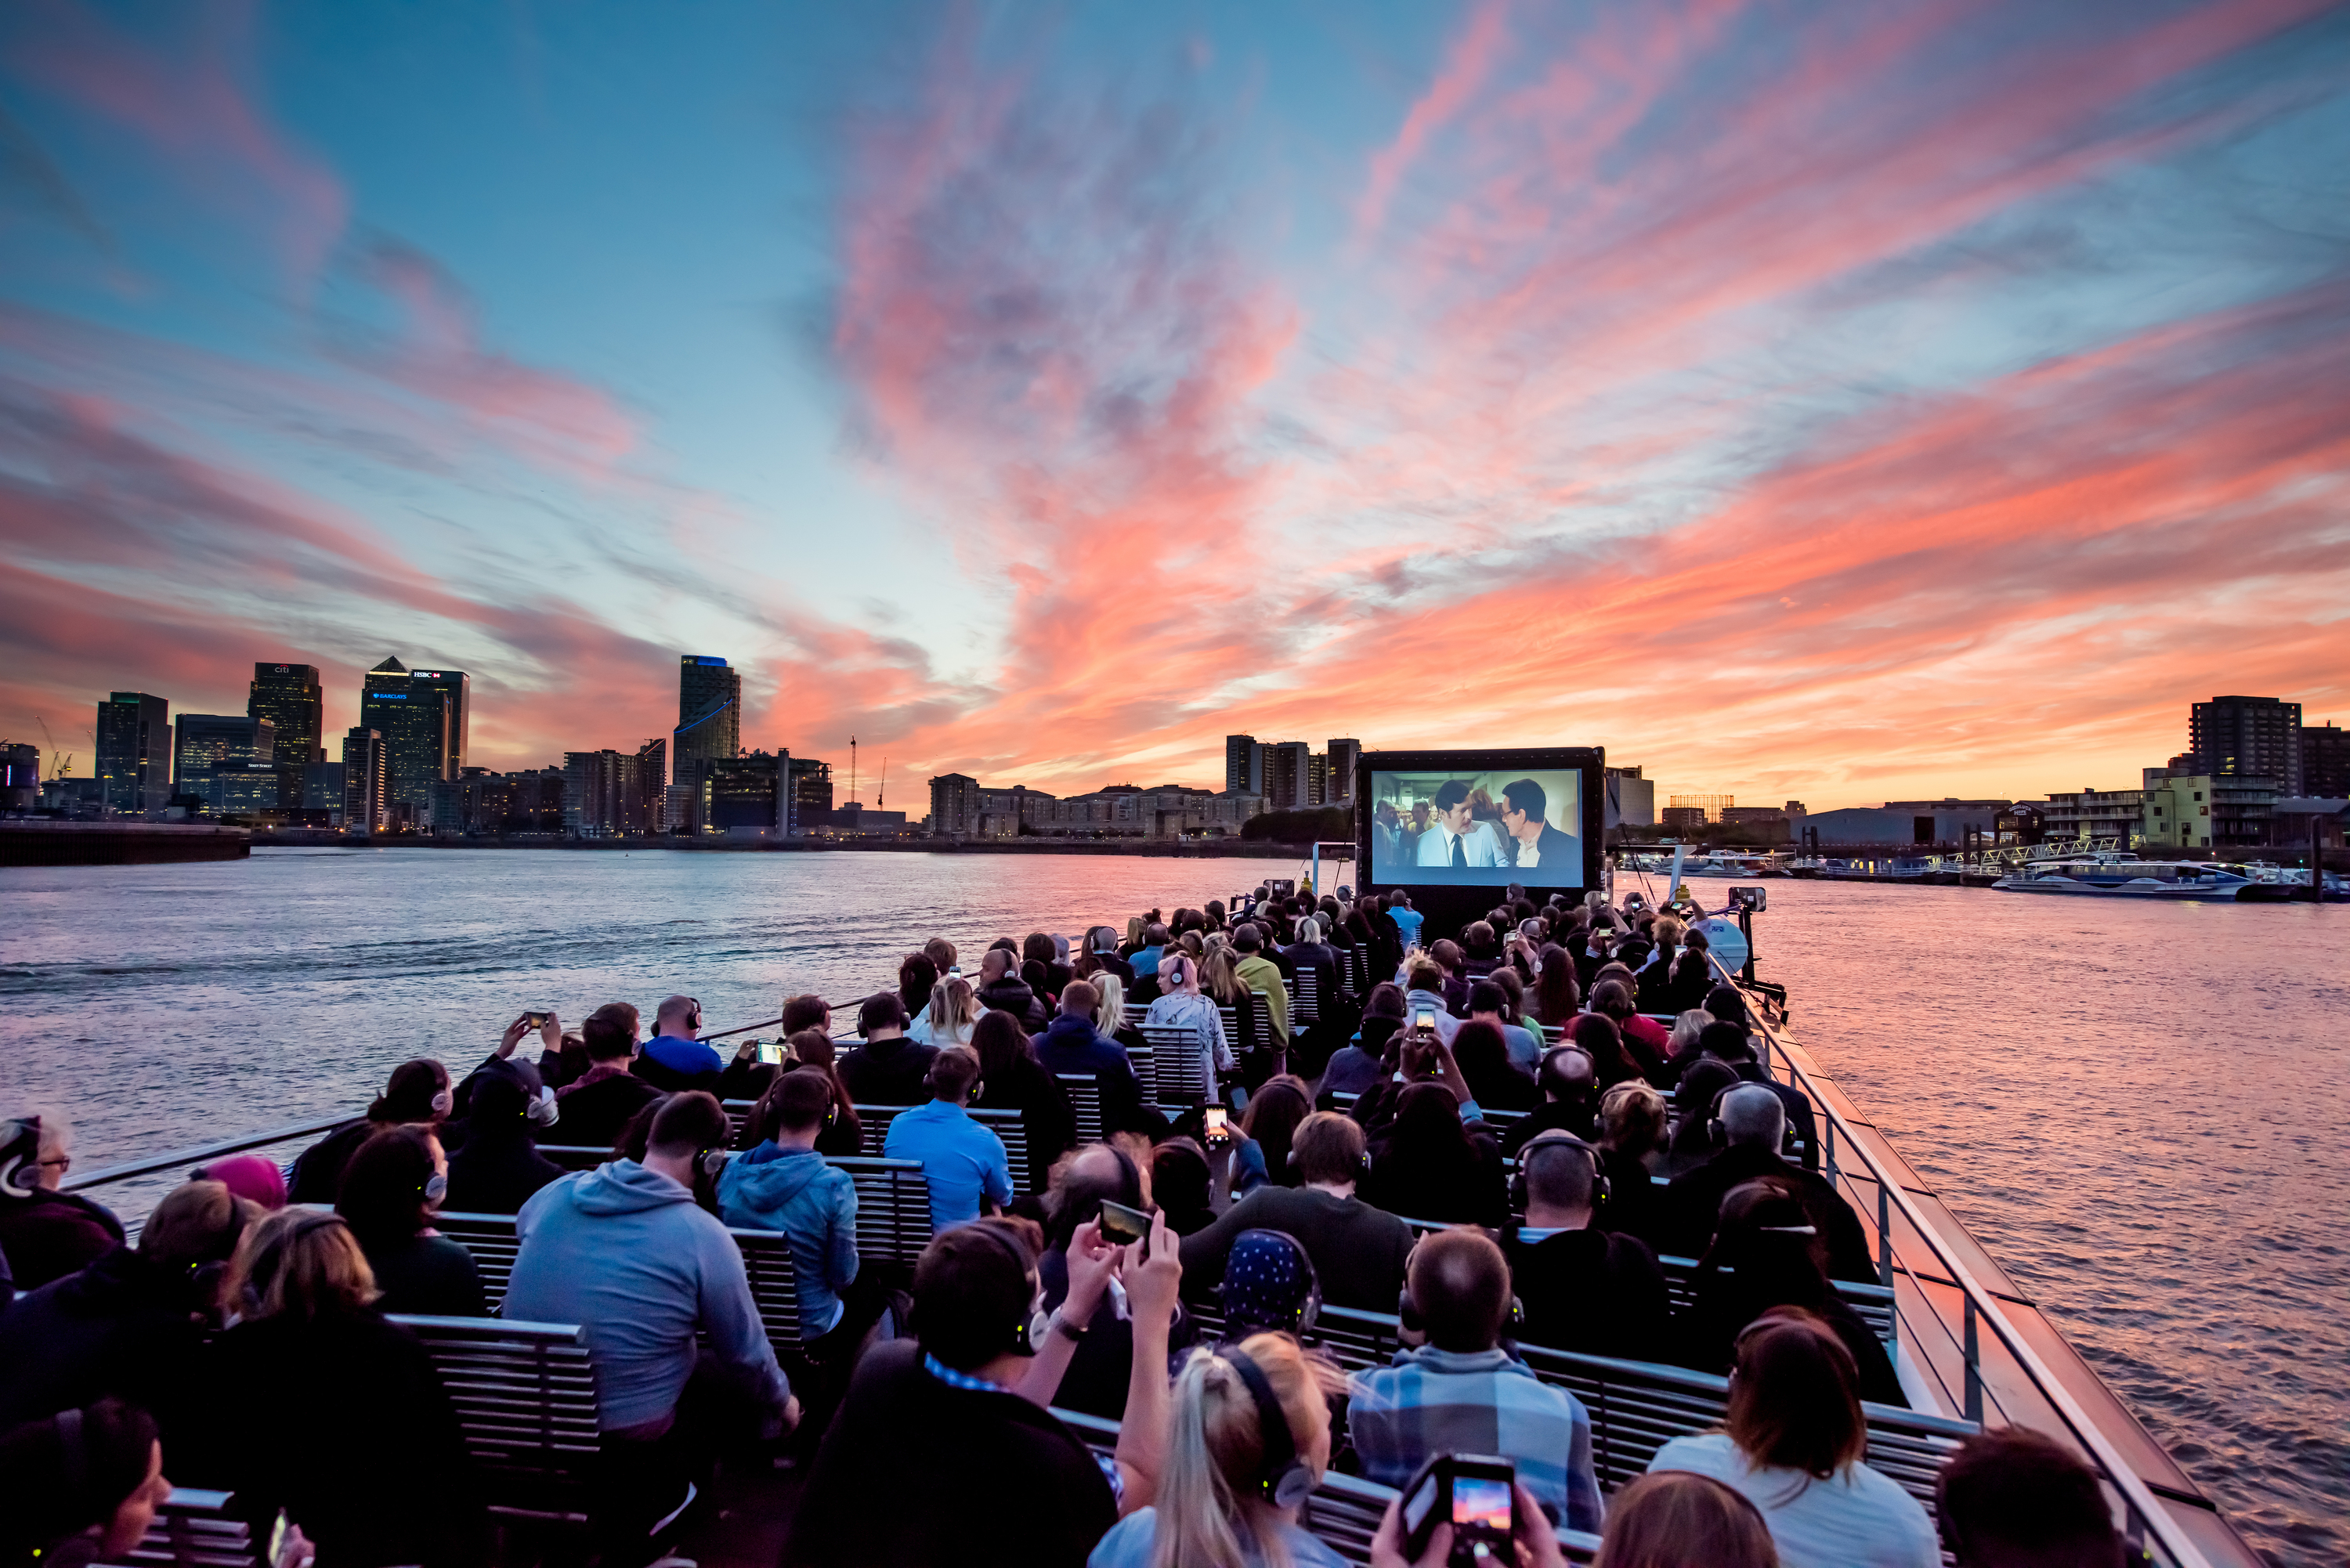 The sun is out! It's time to book your seat at Movies on the River